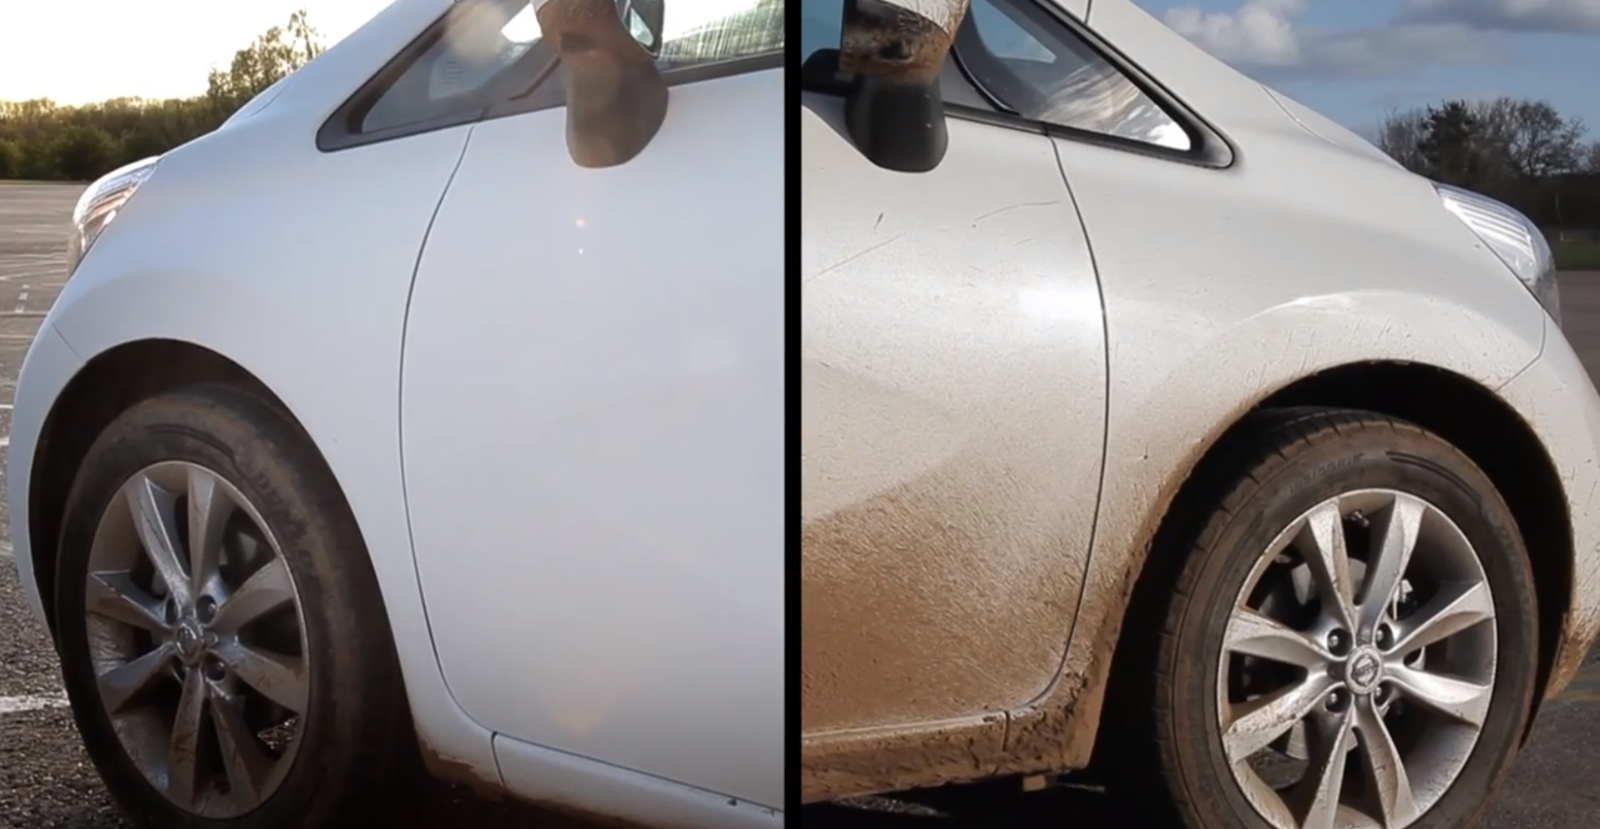 nissan-invents-self-cleaning-car-with-paint-that-repels-dirt-video-80416_2